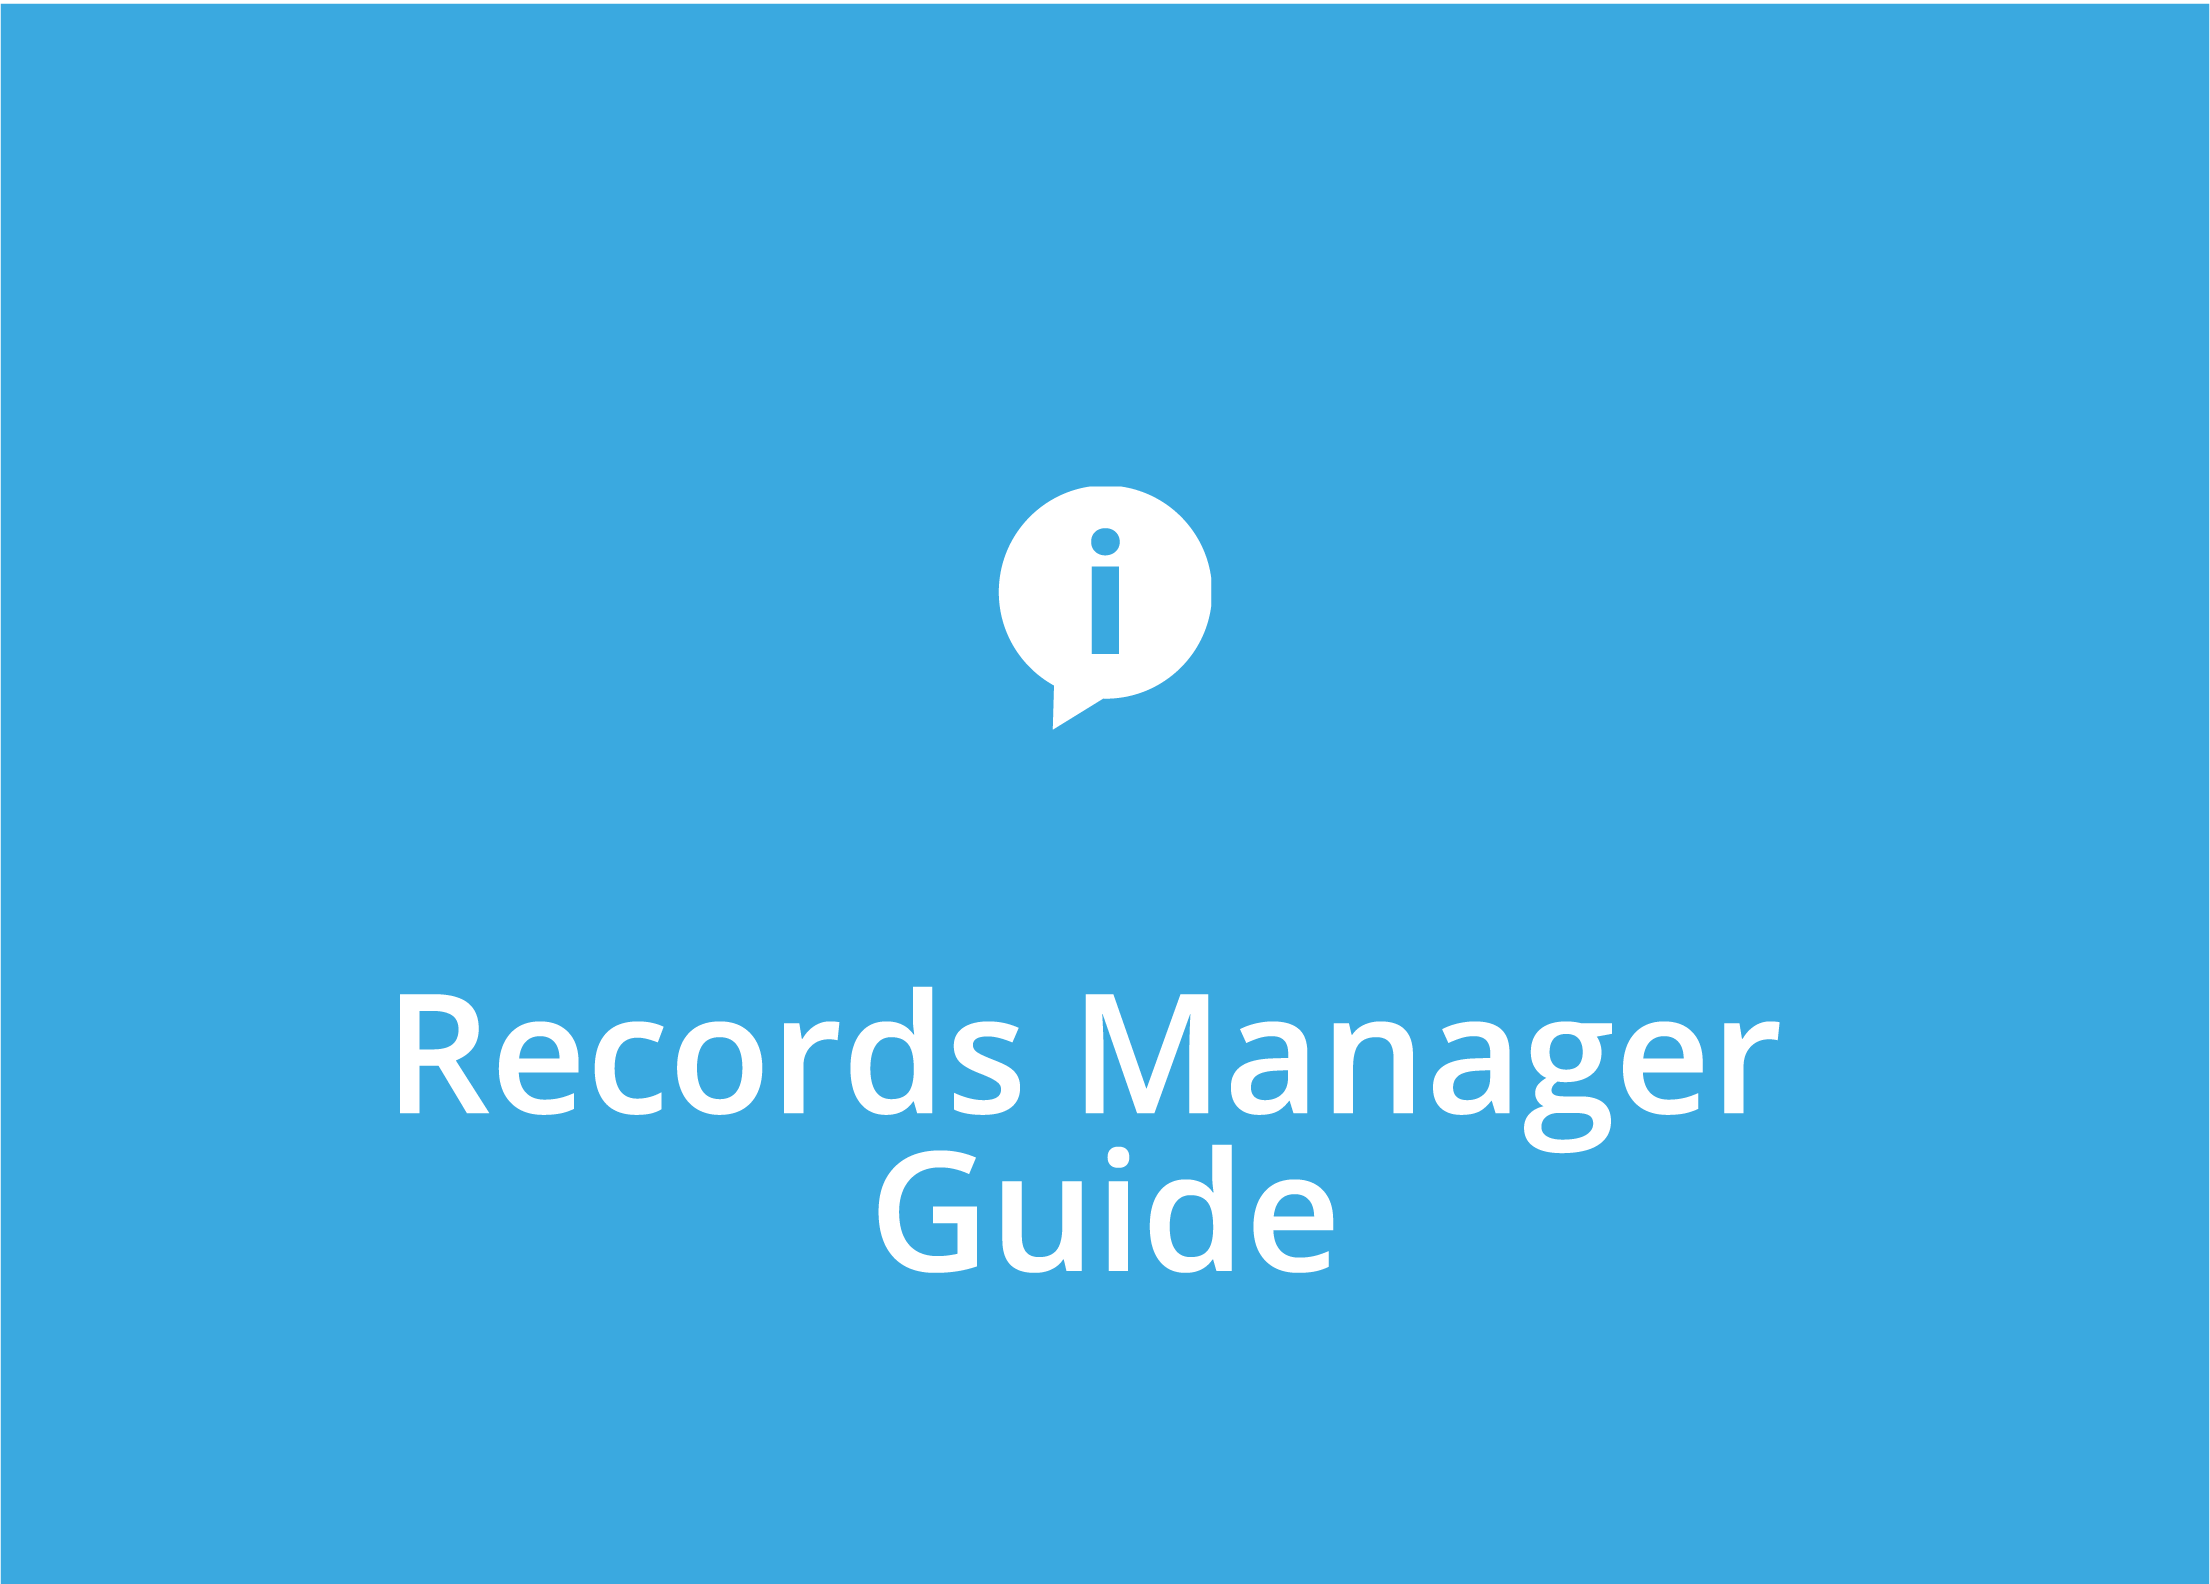 Records Manager Guide